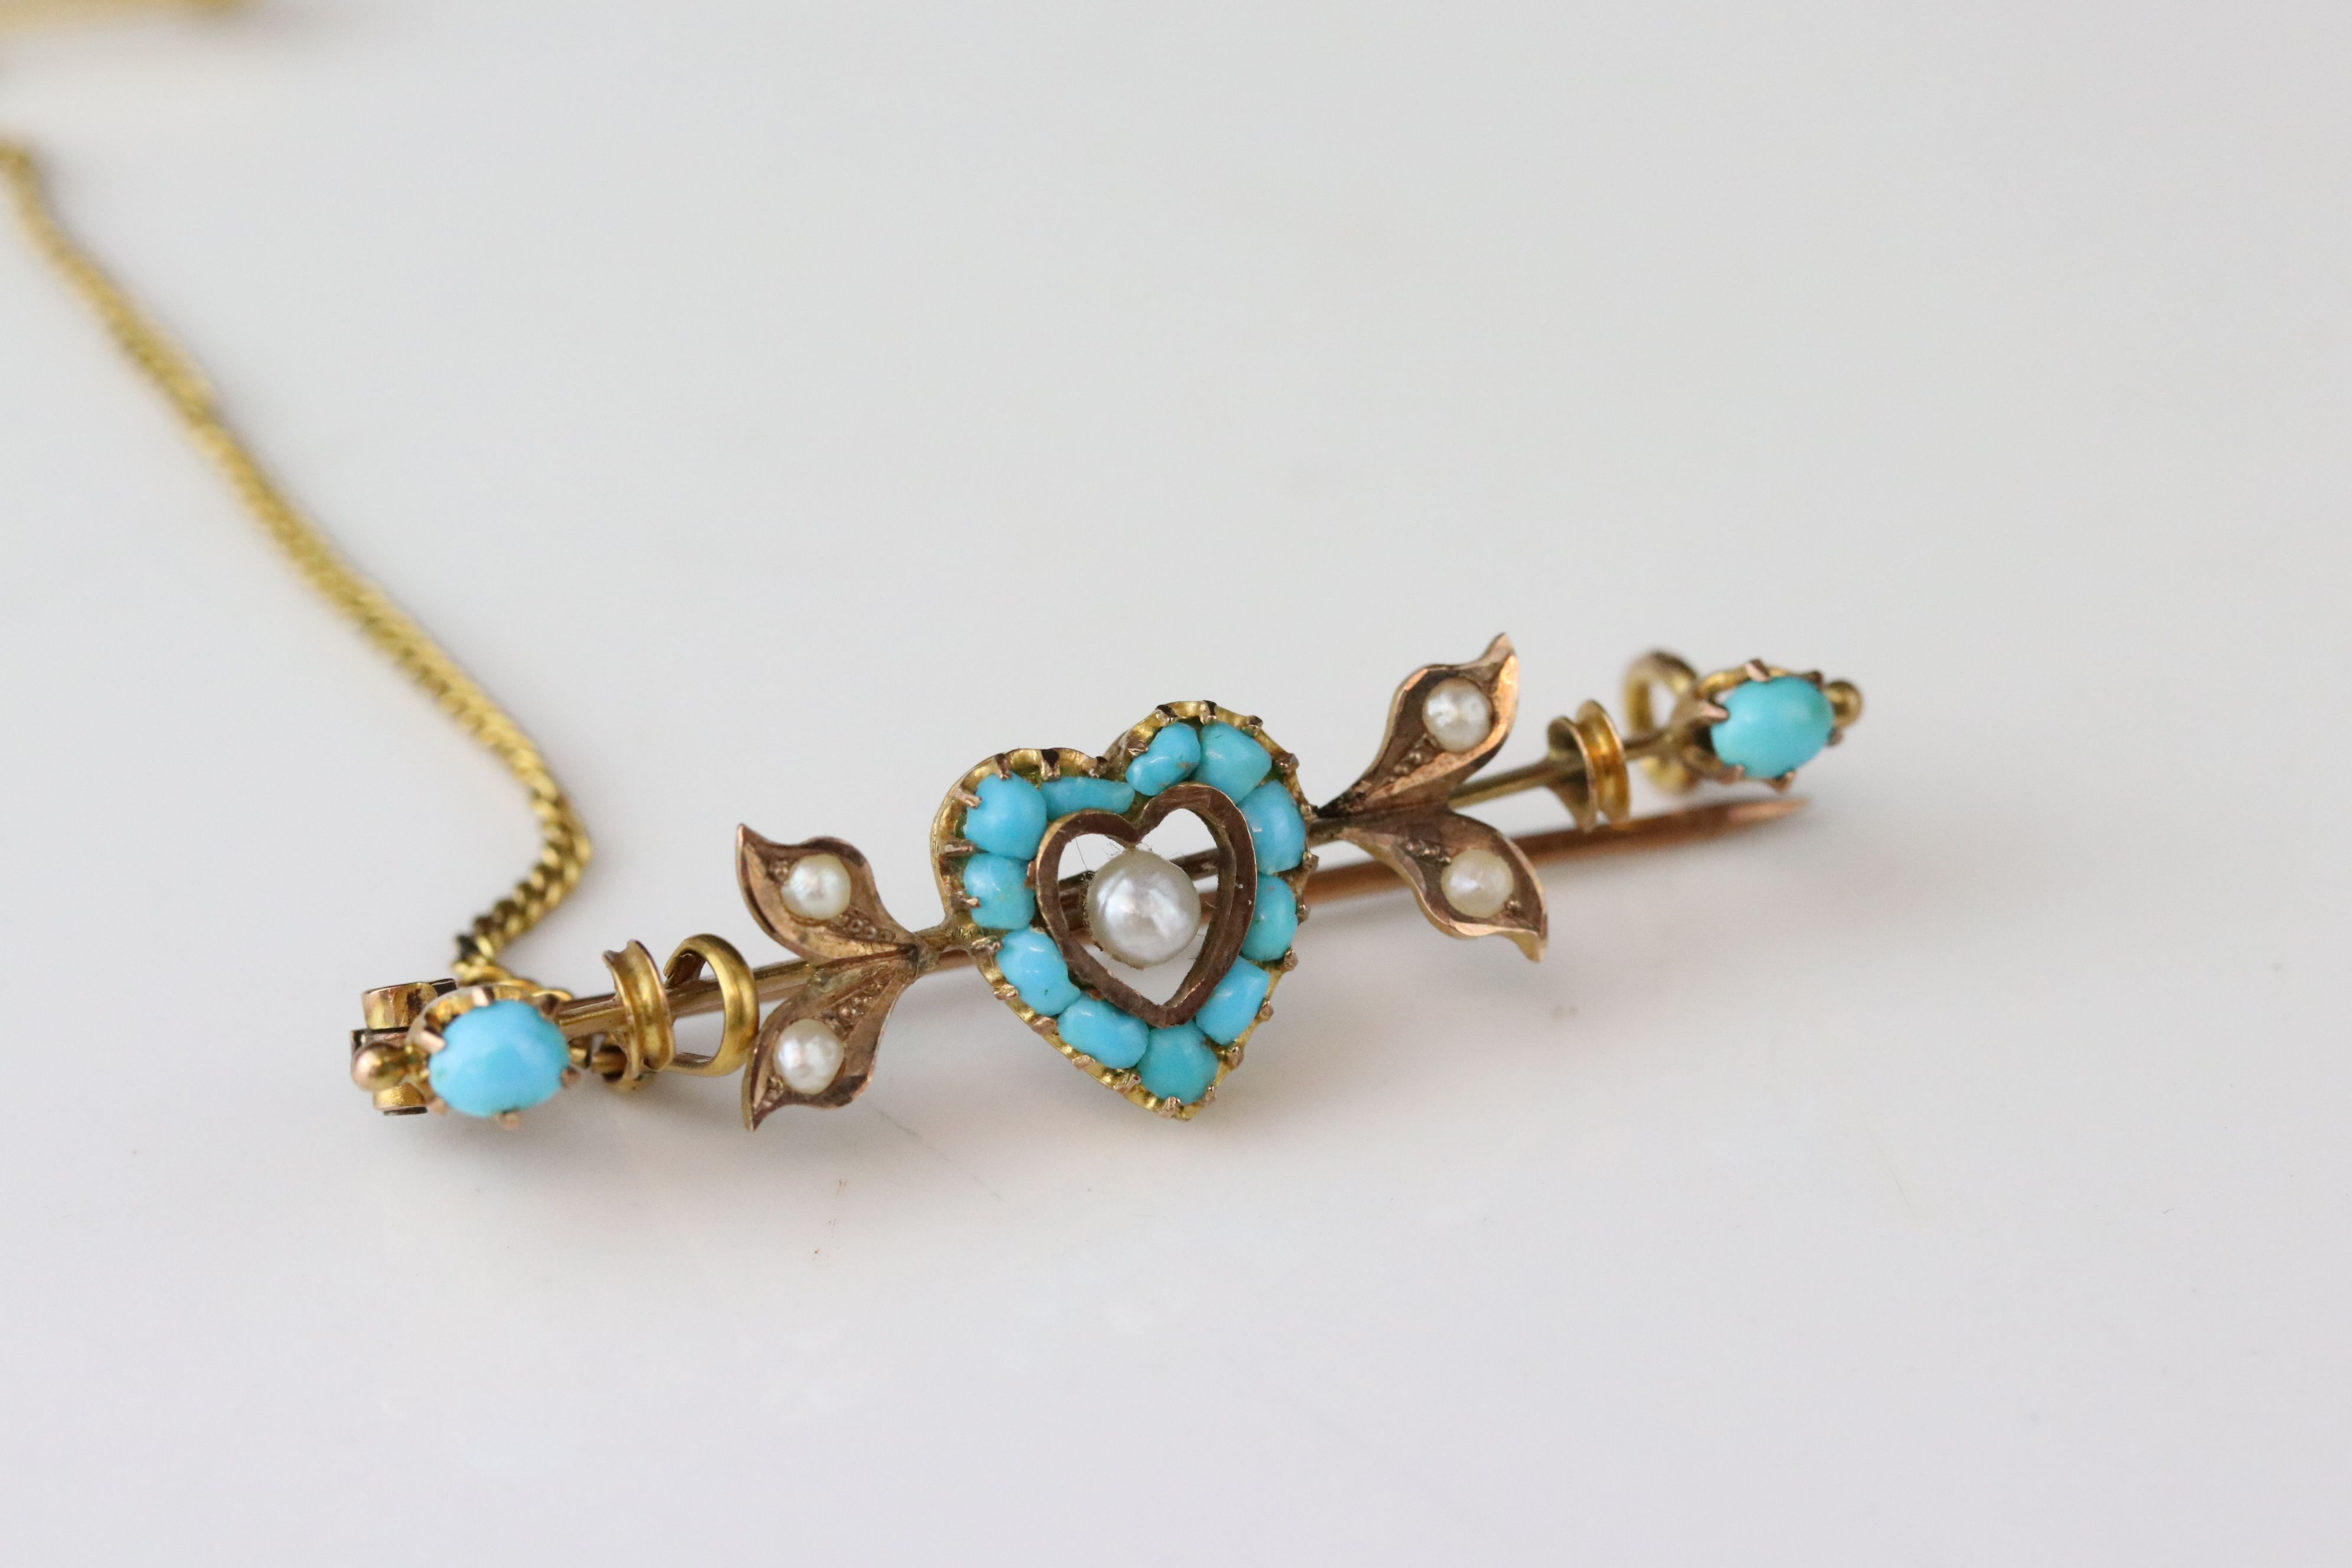 German 19th century turquoise and seed pearl 8ct gold sweetheart brooch, the central heart-shaped